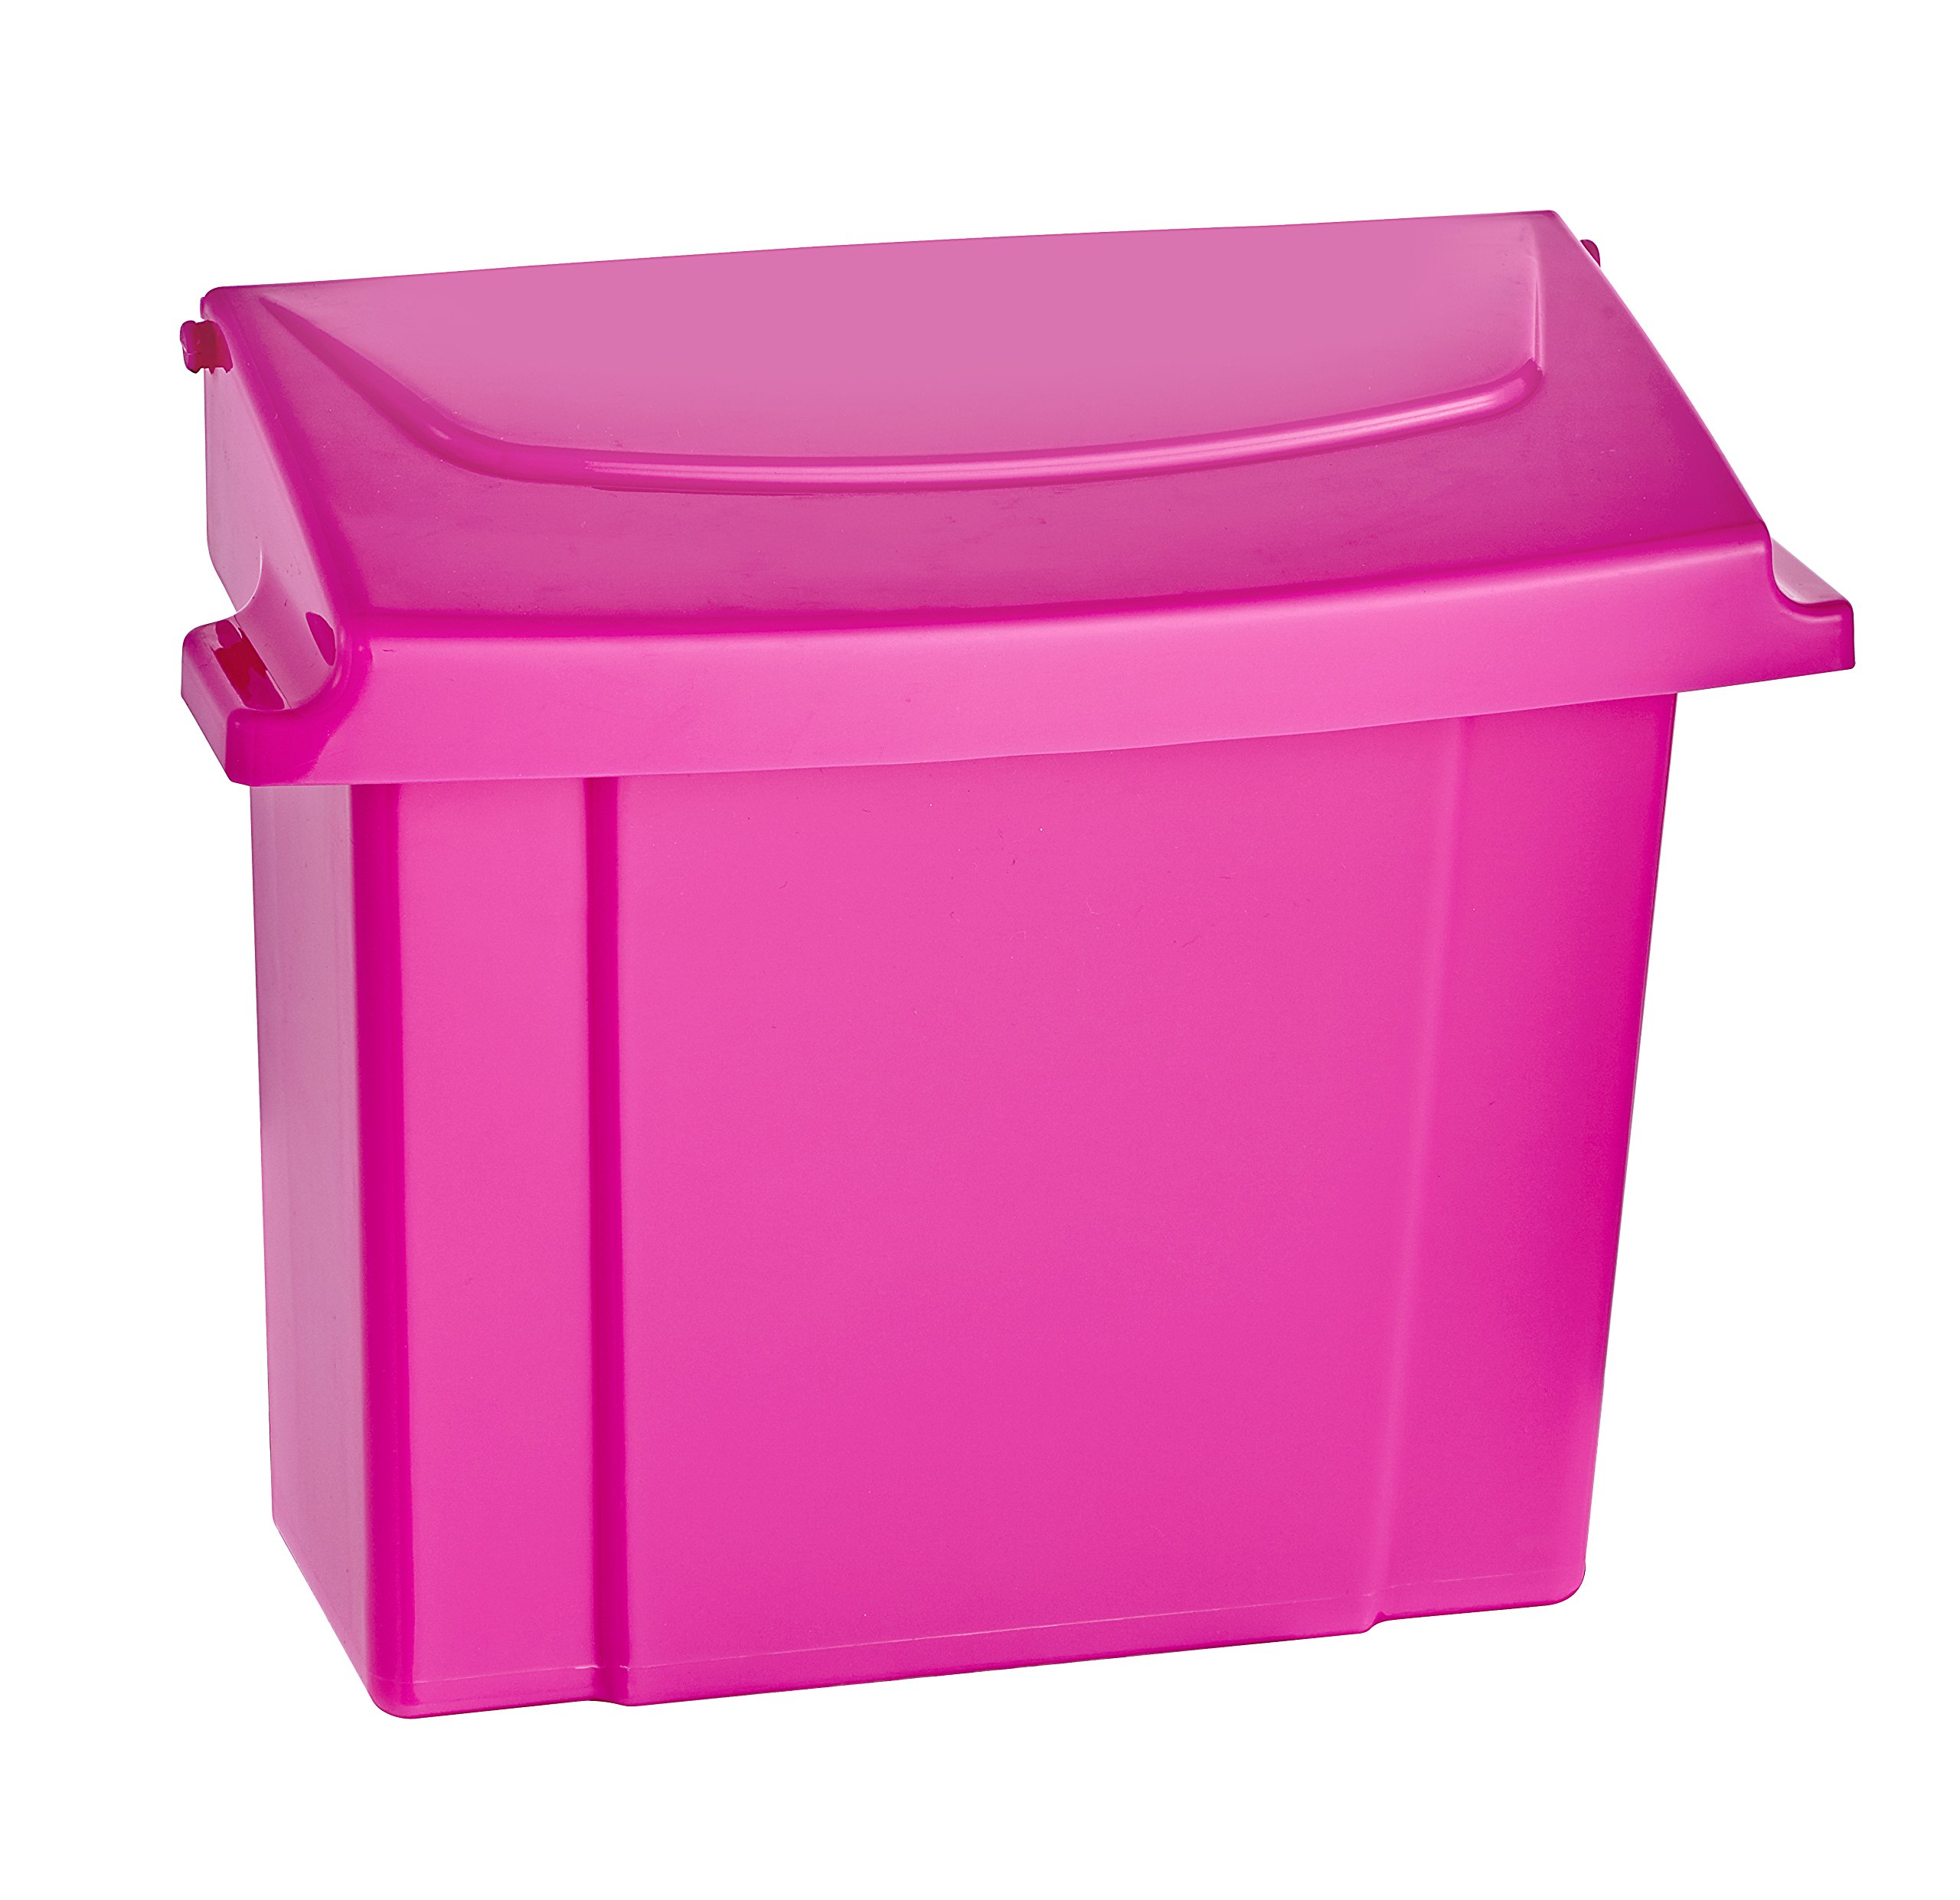 Alpine Sanitary Napkins Receptacle - Feminine Hygiene Products, Tampon & Waste Disposal Container - Durable ABS Plastic - Seals Tightly & Traps Odors -Easy Installation Hardware Included (Pink)